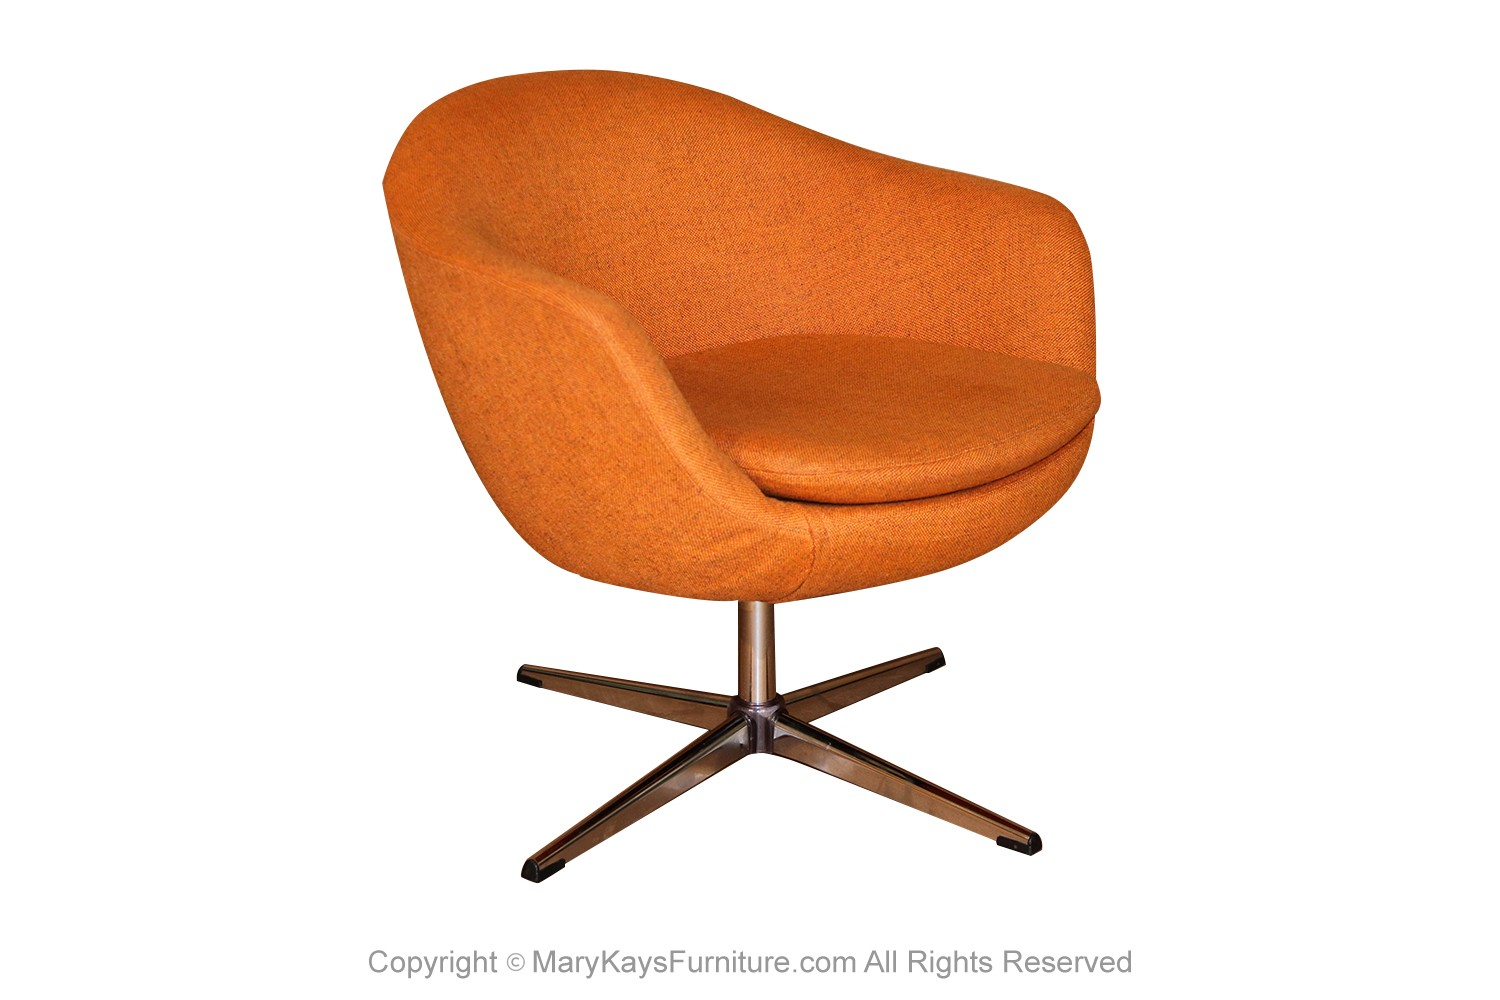 Image of: Mid Century Overman Carl Eric Klote Swedish Swivel Chair